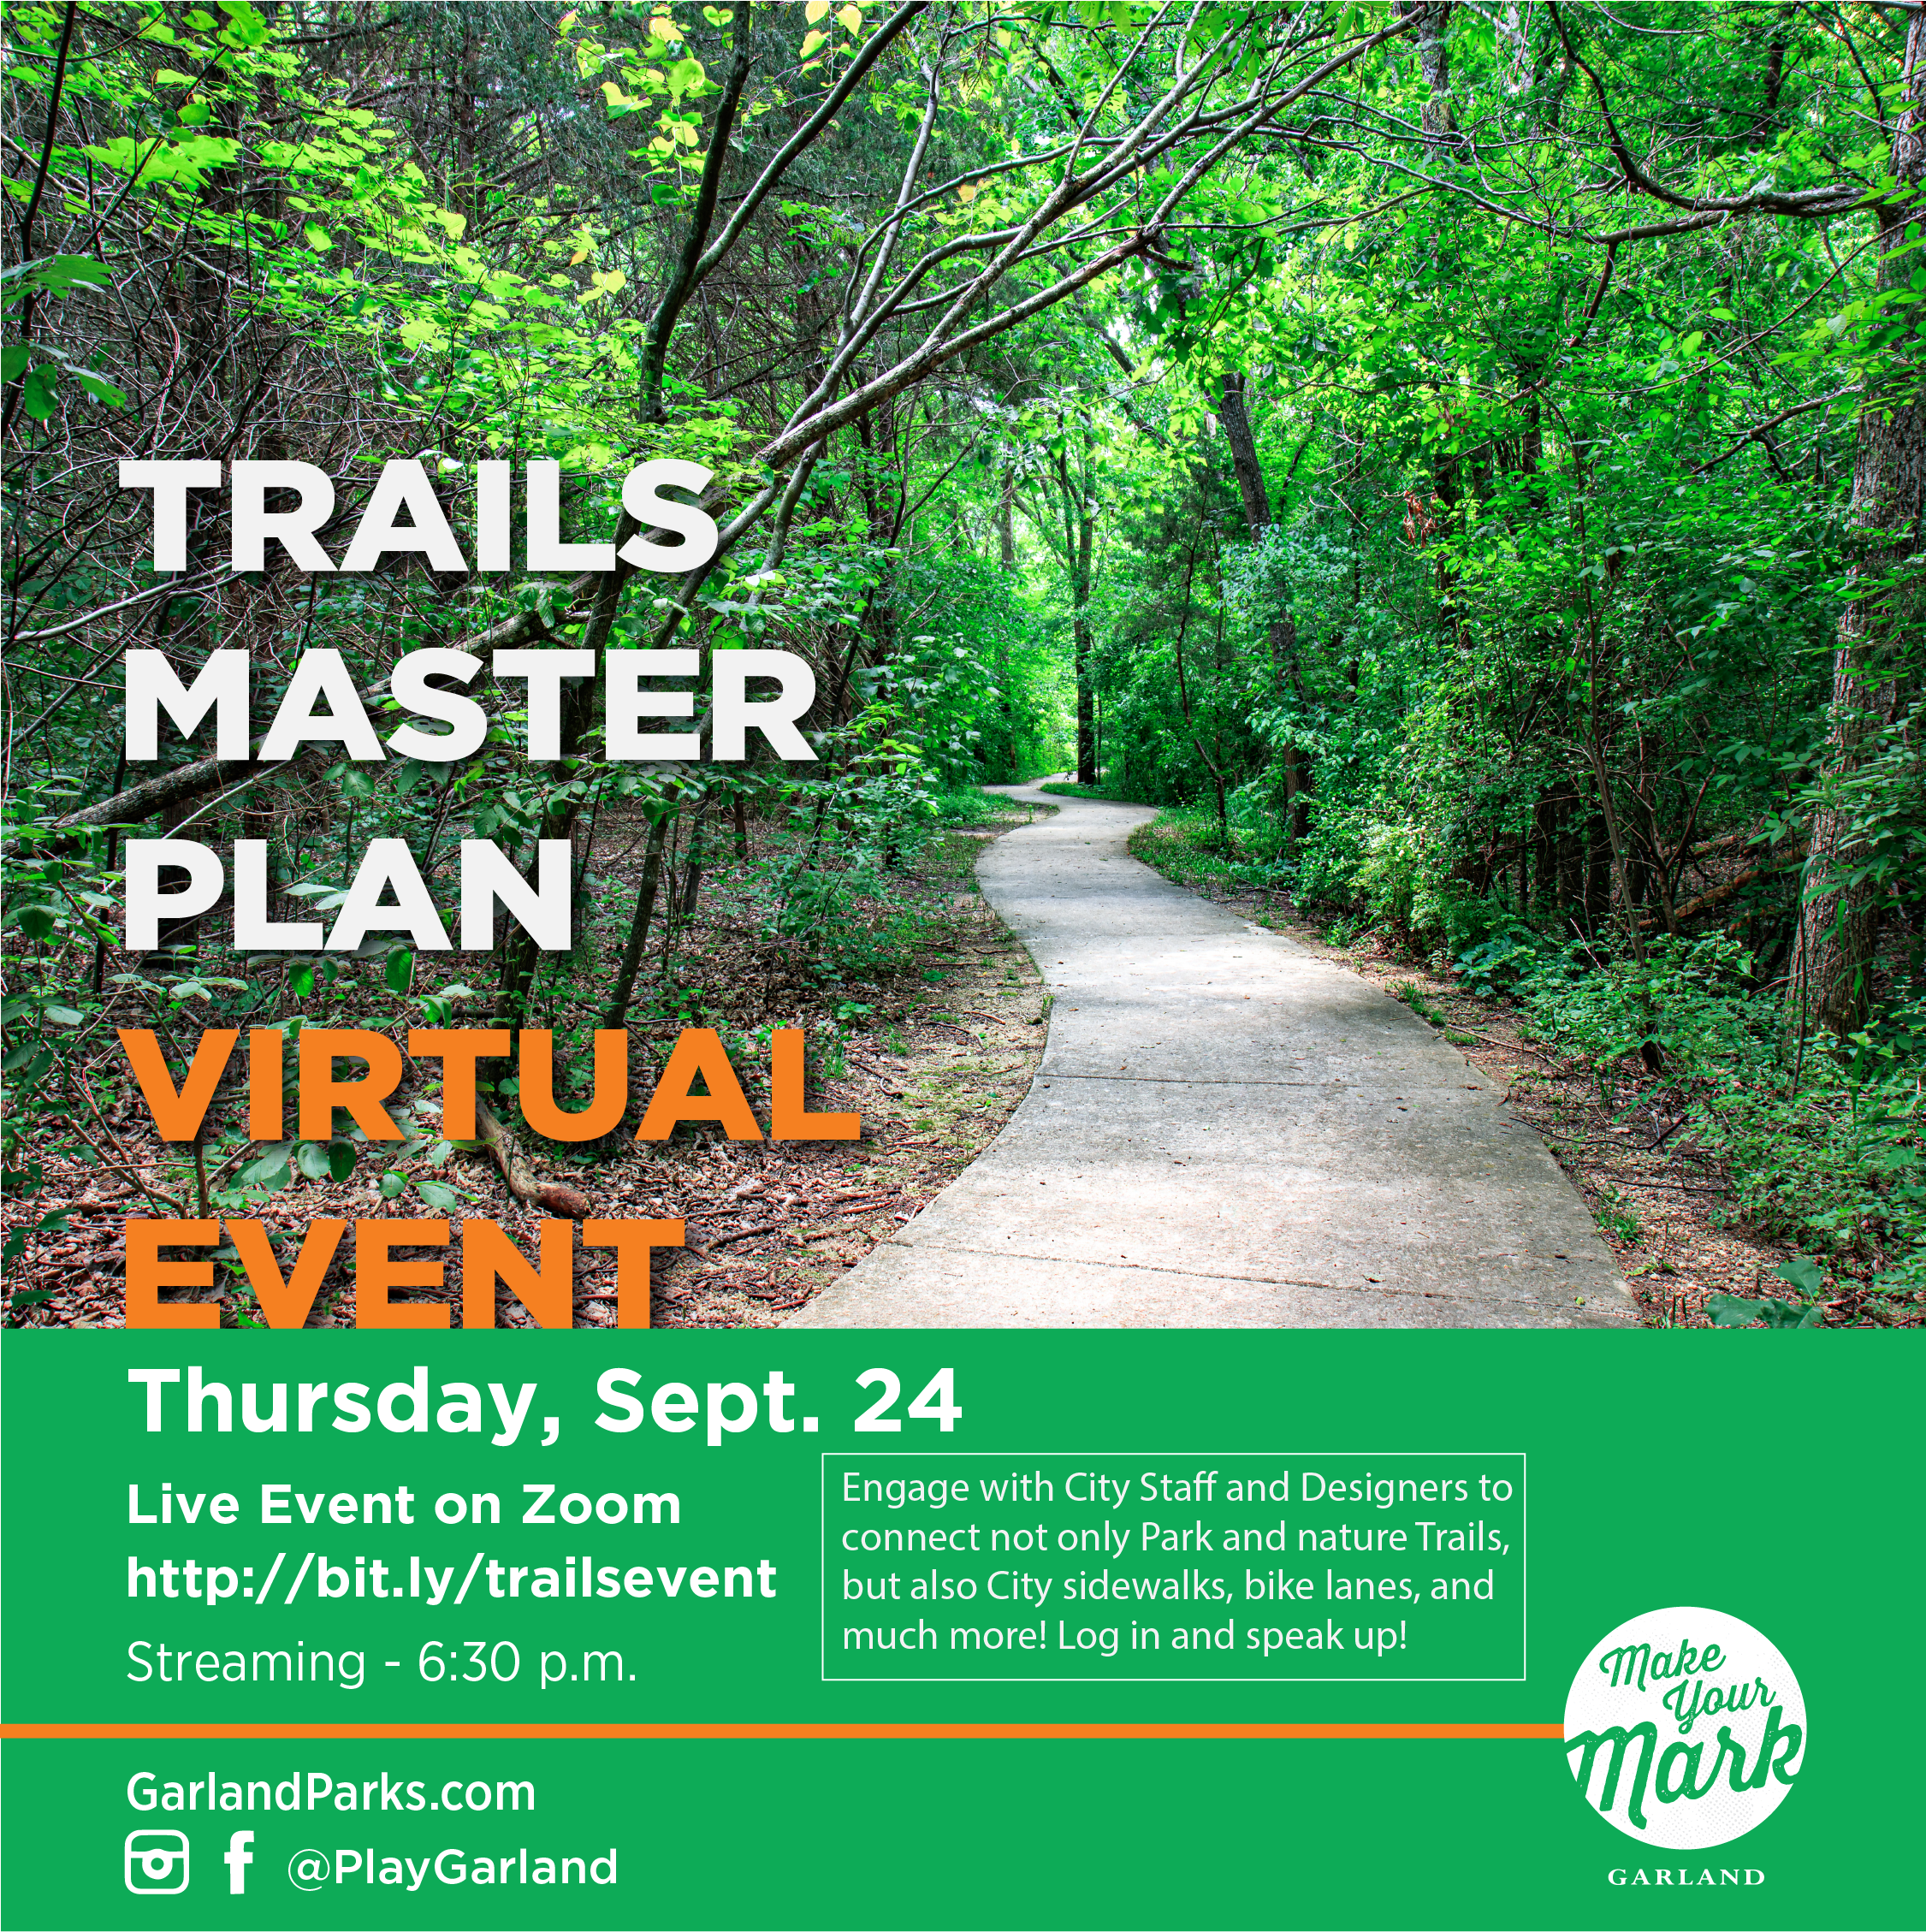 TrailsMasterPlan_Virtual event with trees and paved trail of Spring Creek Trail